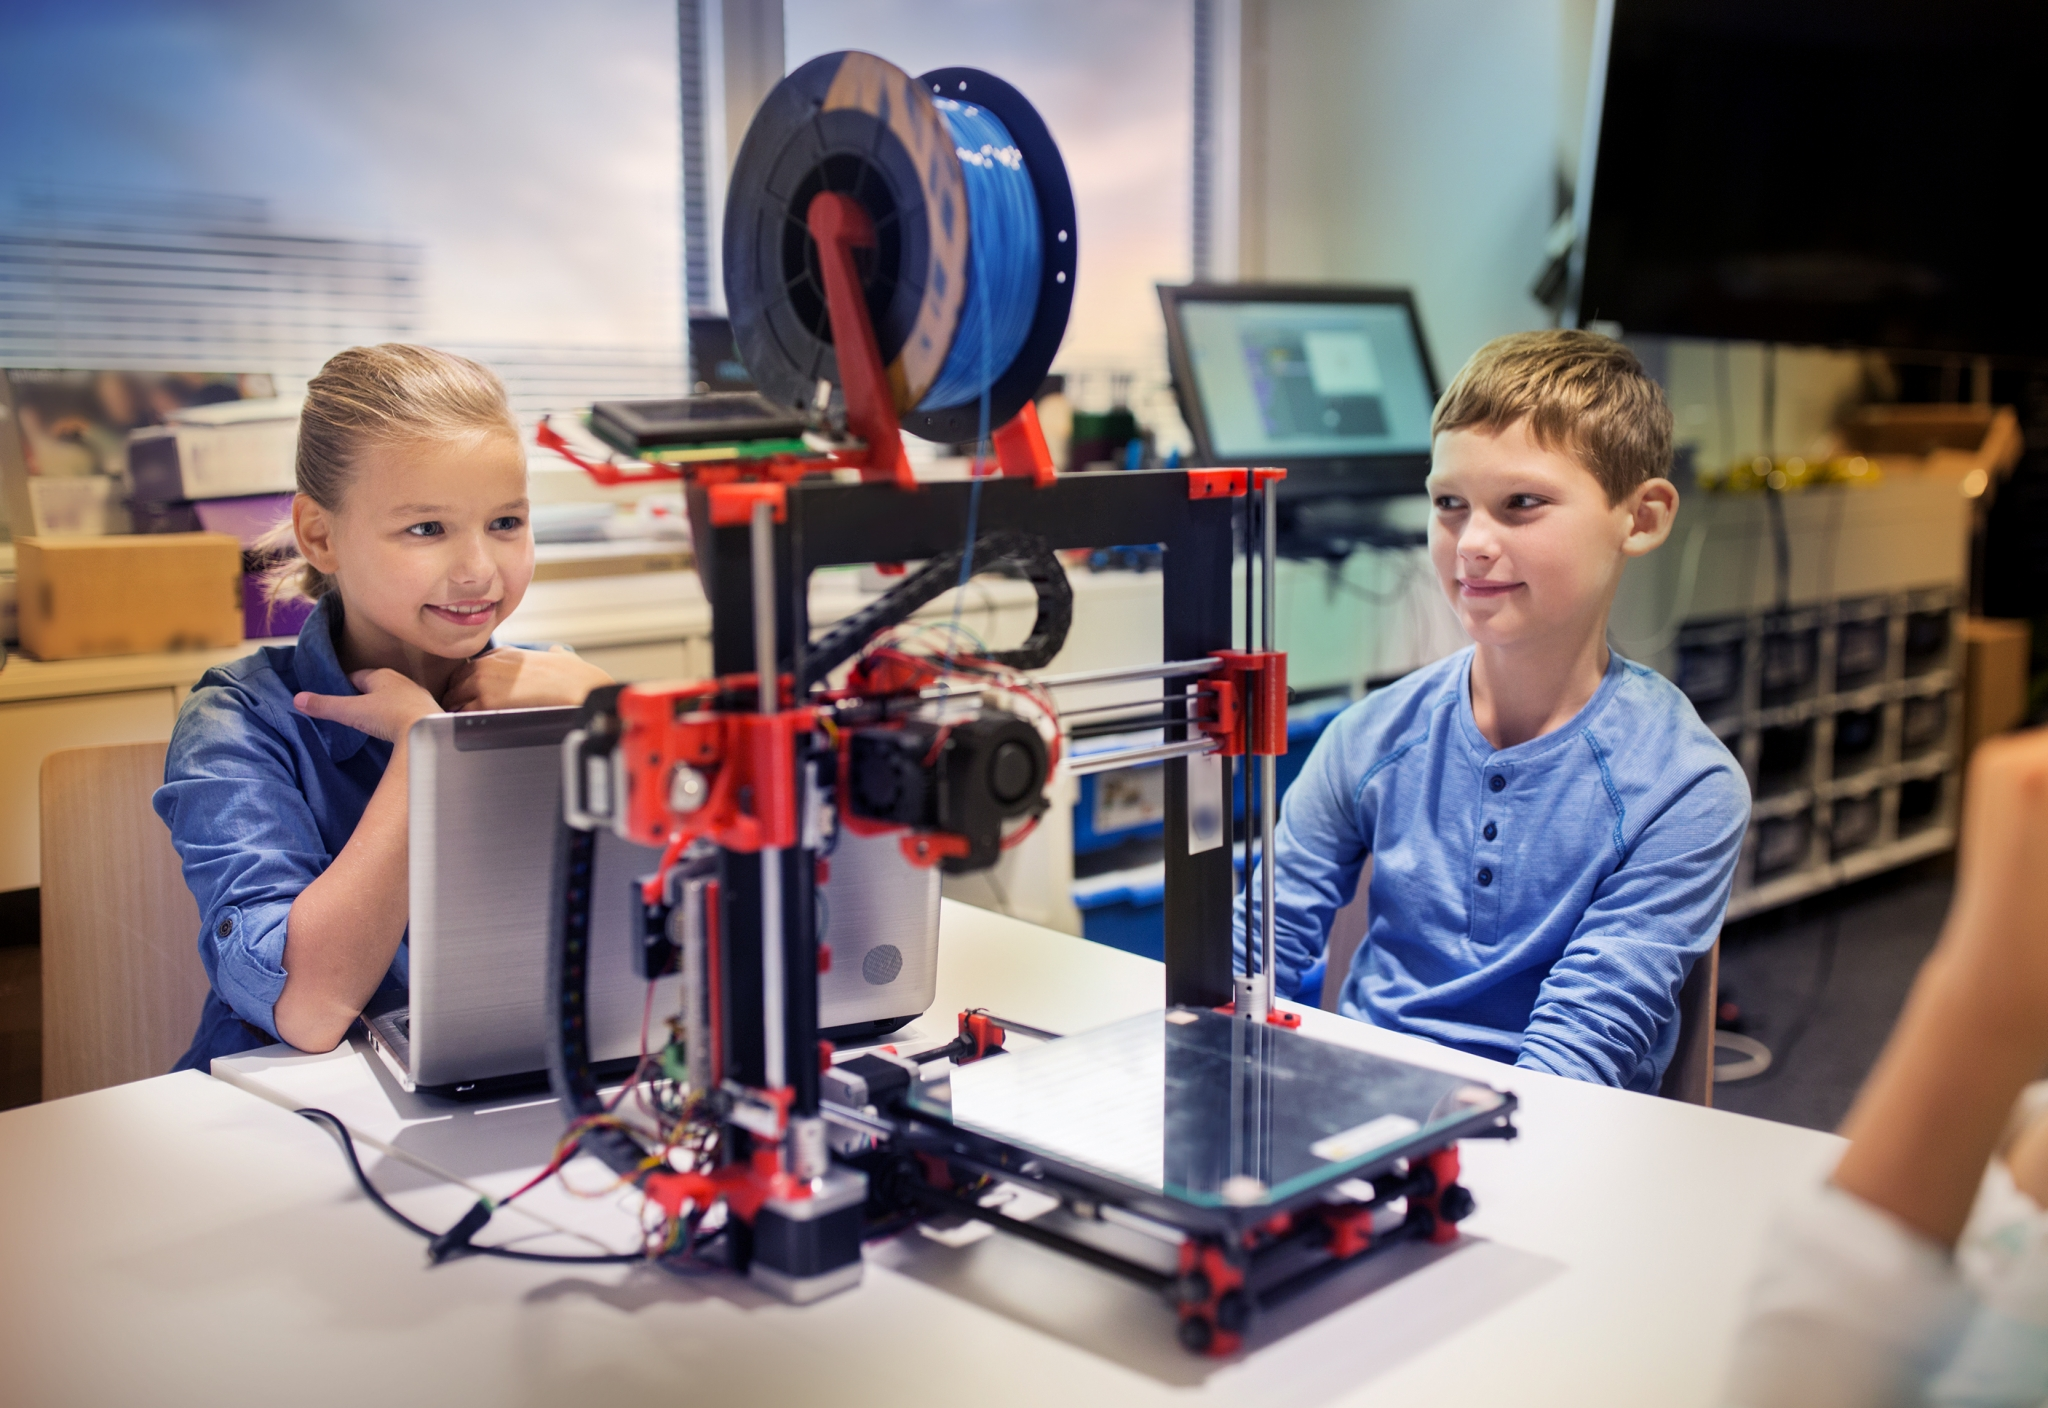 3D Printing and Design - Bangor